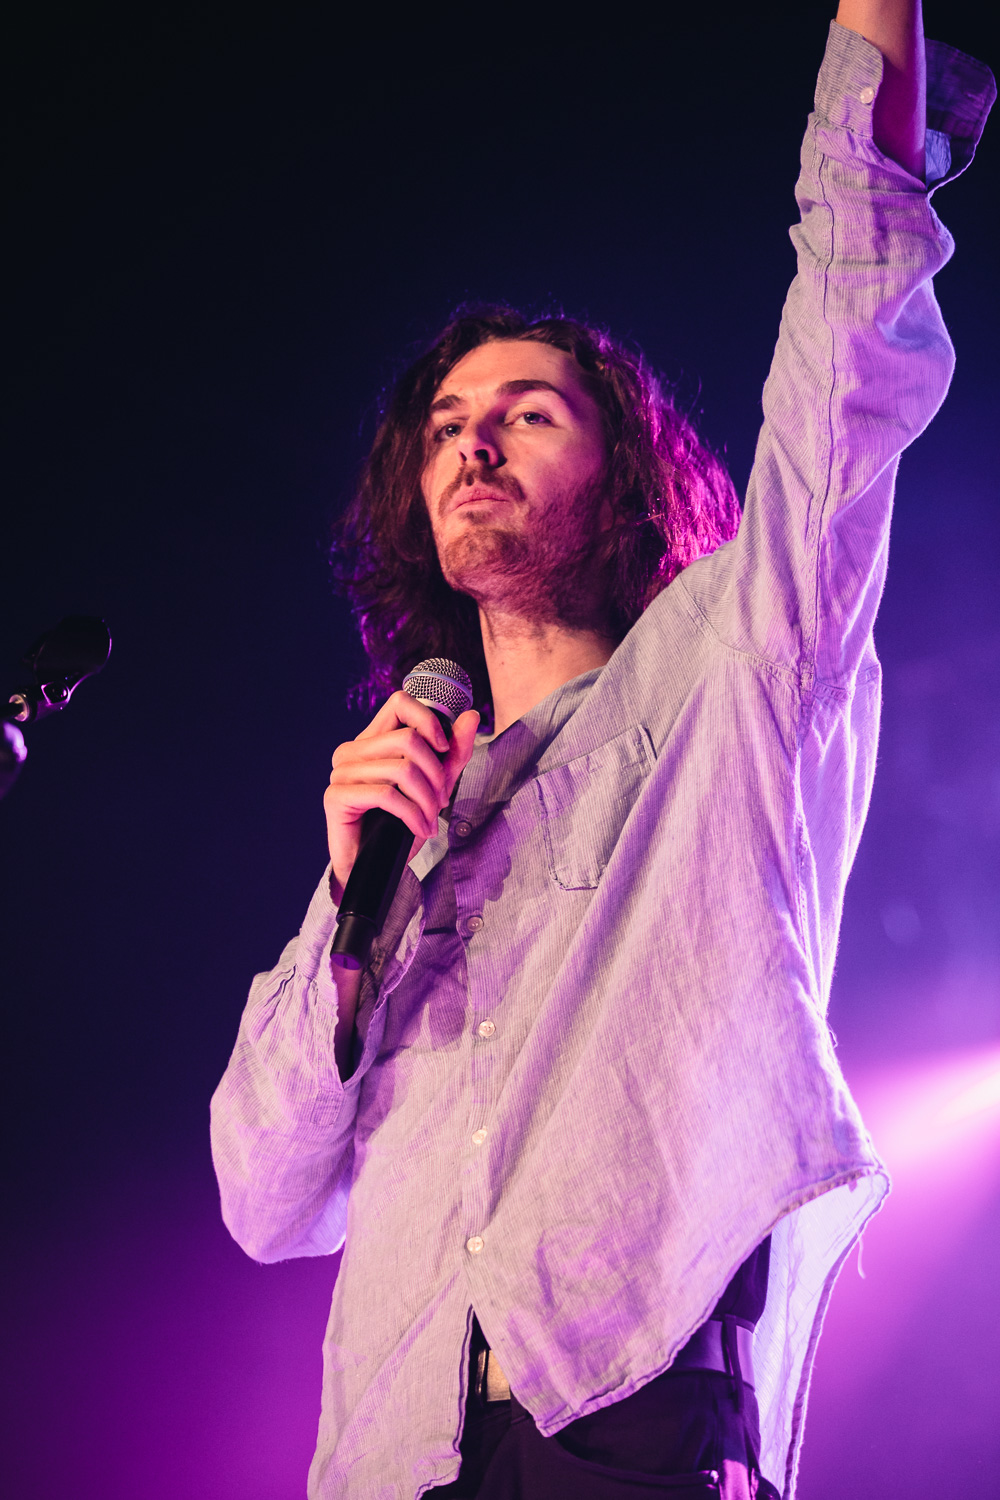 Hozier on stage in Utah at the Union Event Center in SLC. Photo: @Lmsorenson